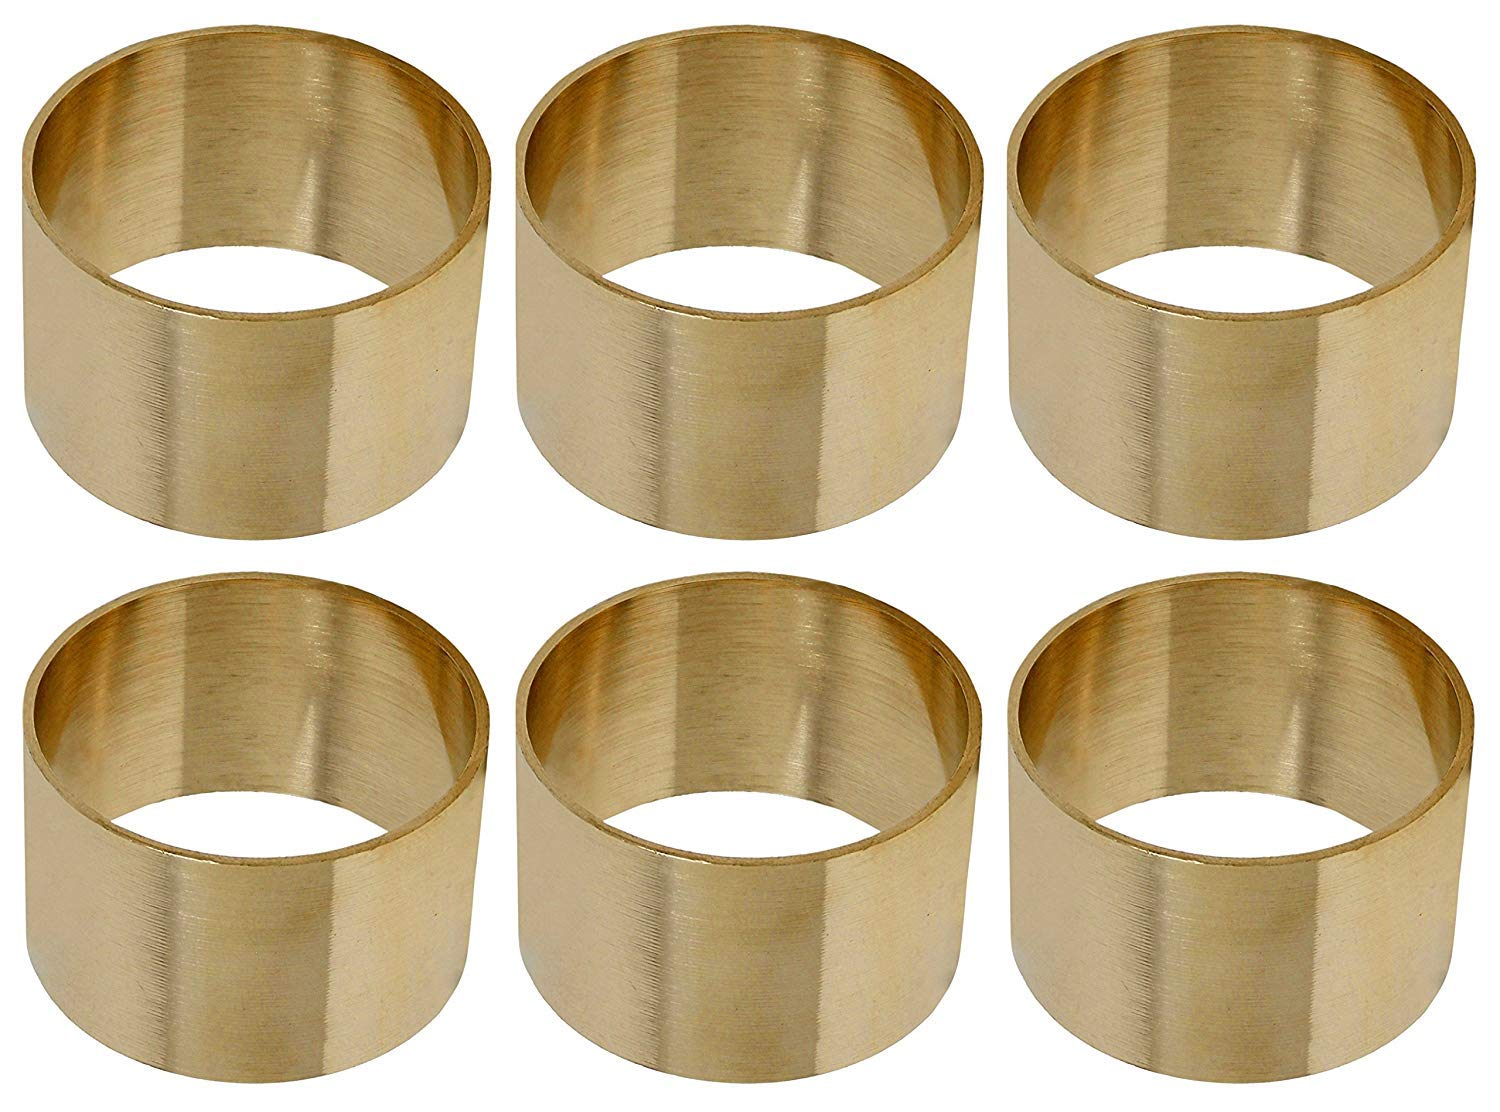 4 Divine glance Golden Napkin Rings for Weddings Dinner Parties or Every Day Use